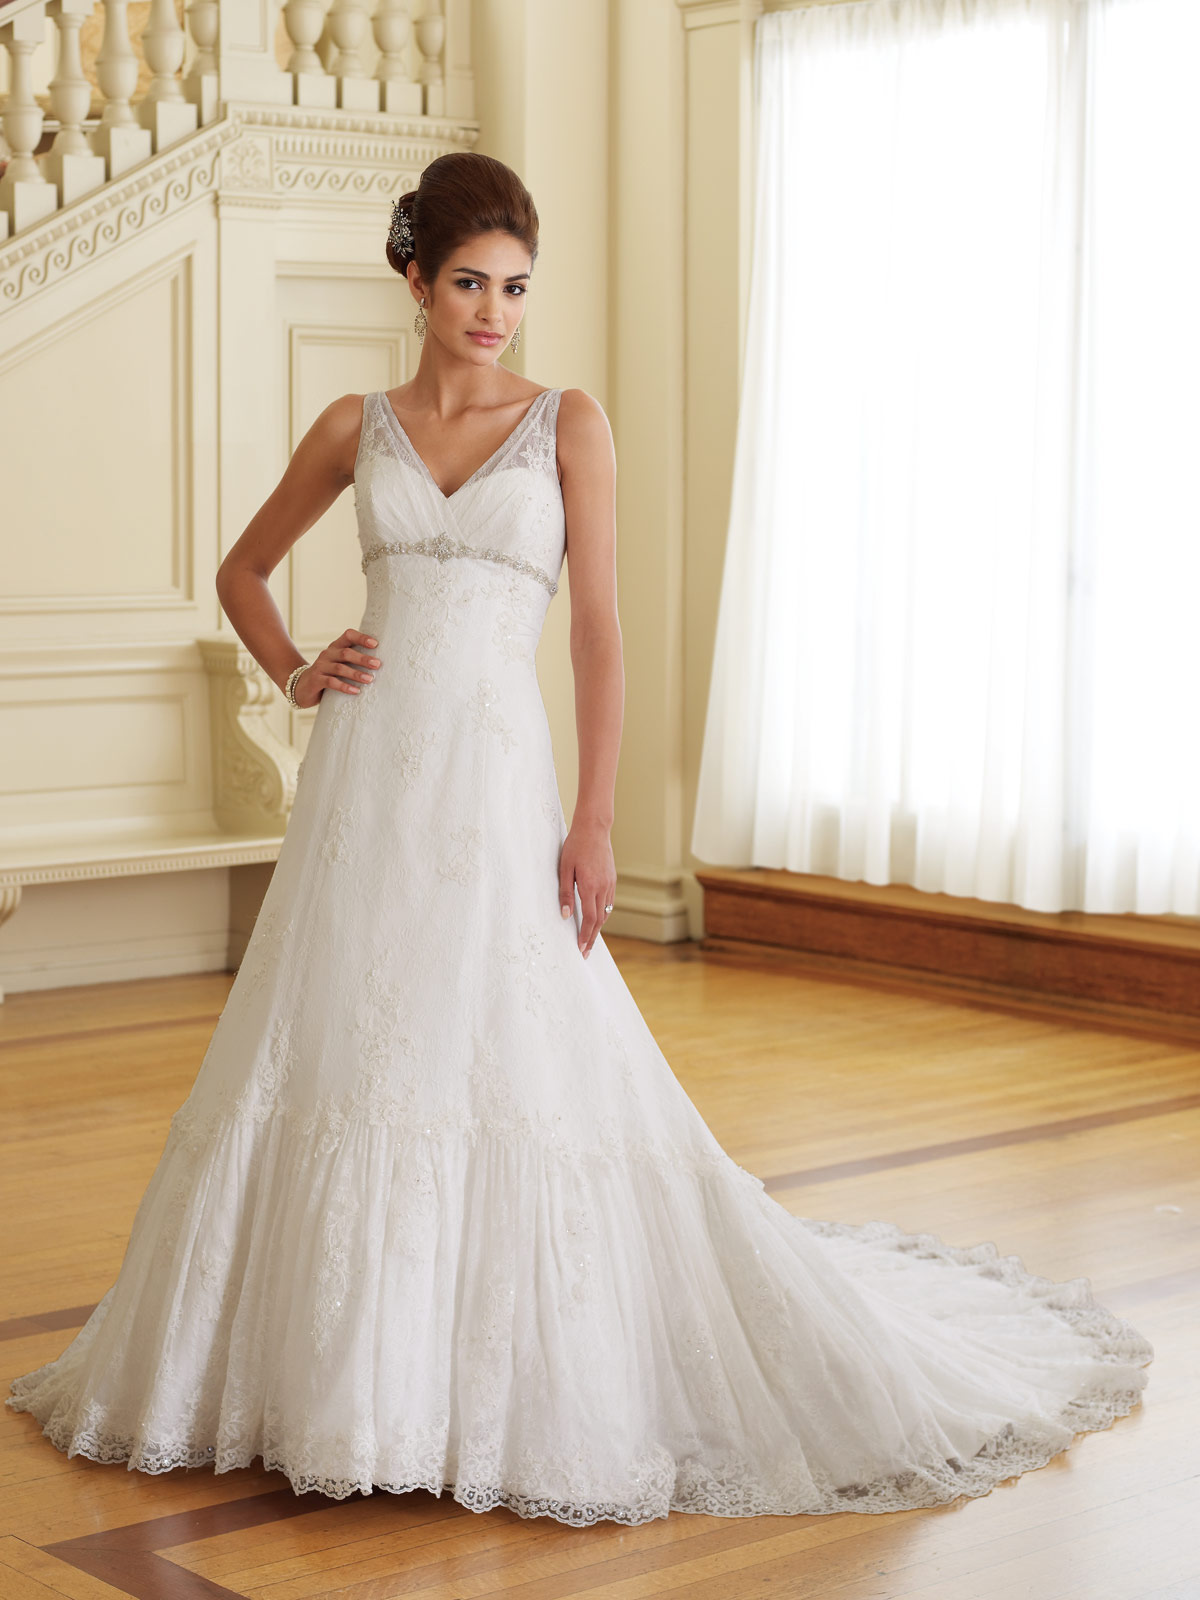 Wedding dresses set 2 hairstyle qoutes tattoo for Pictures of a wedding dress